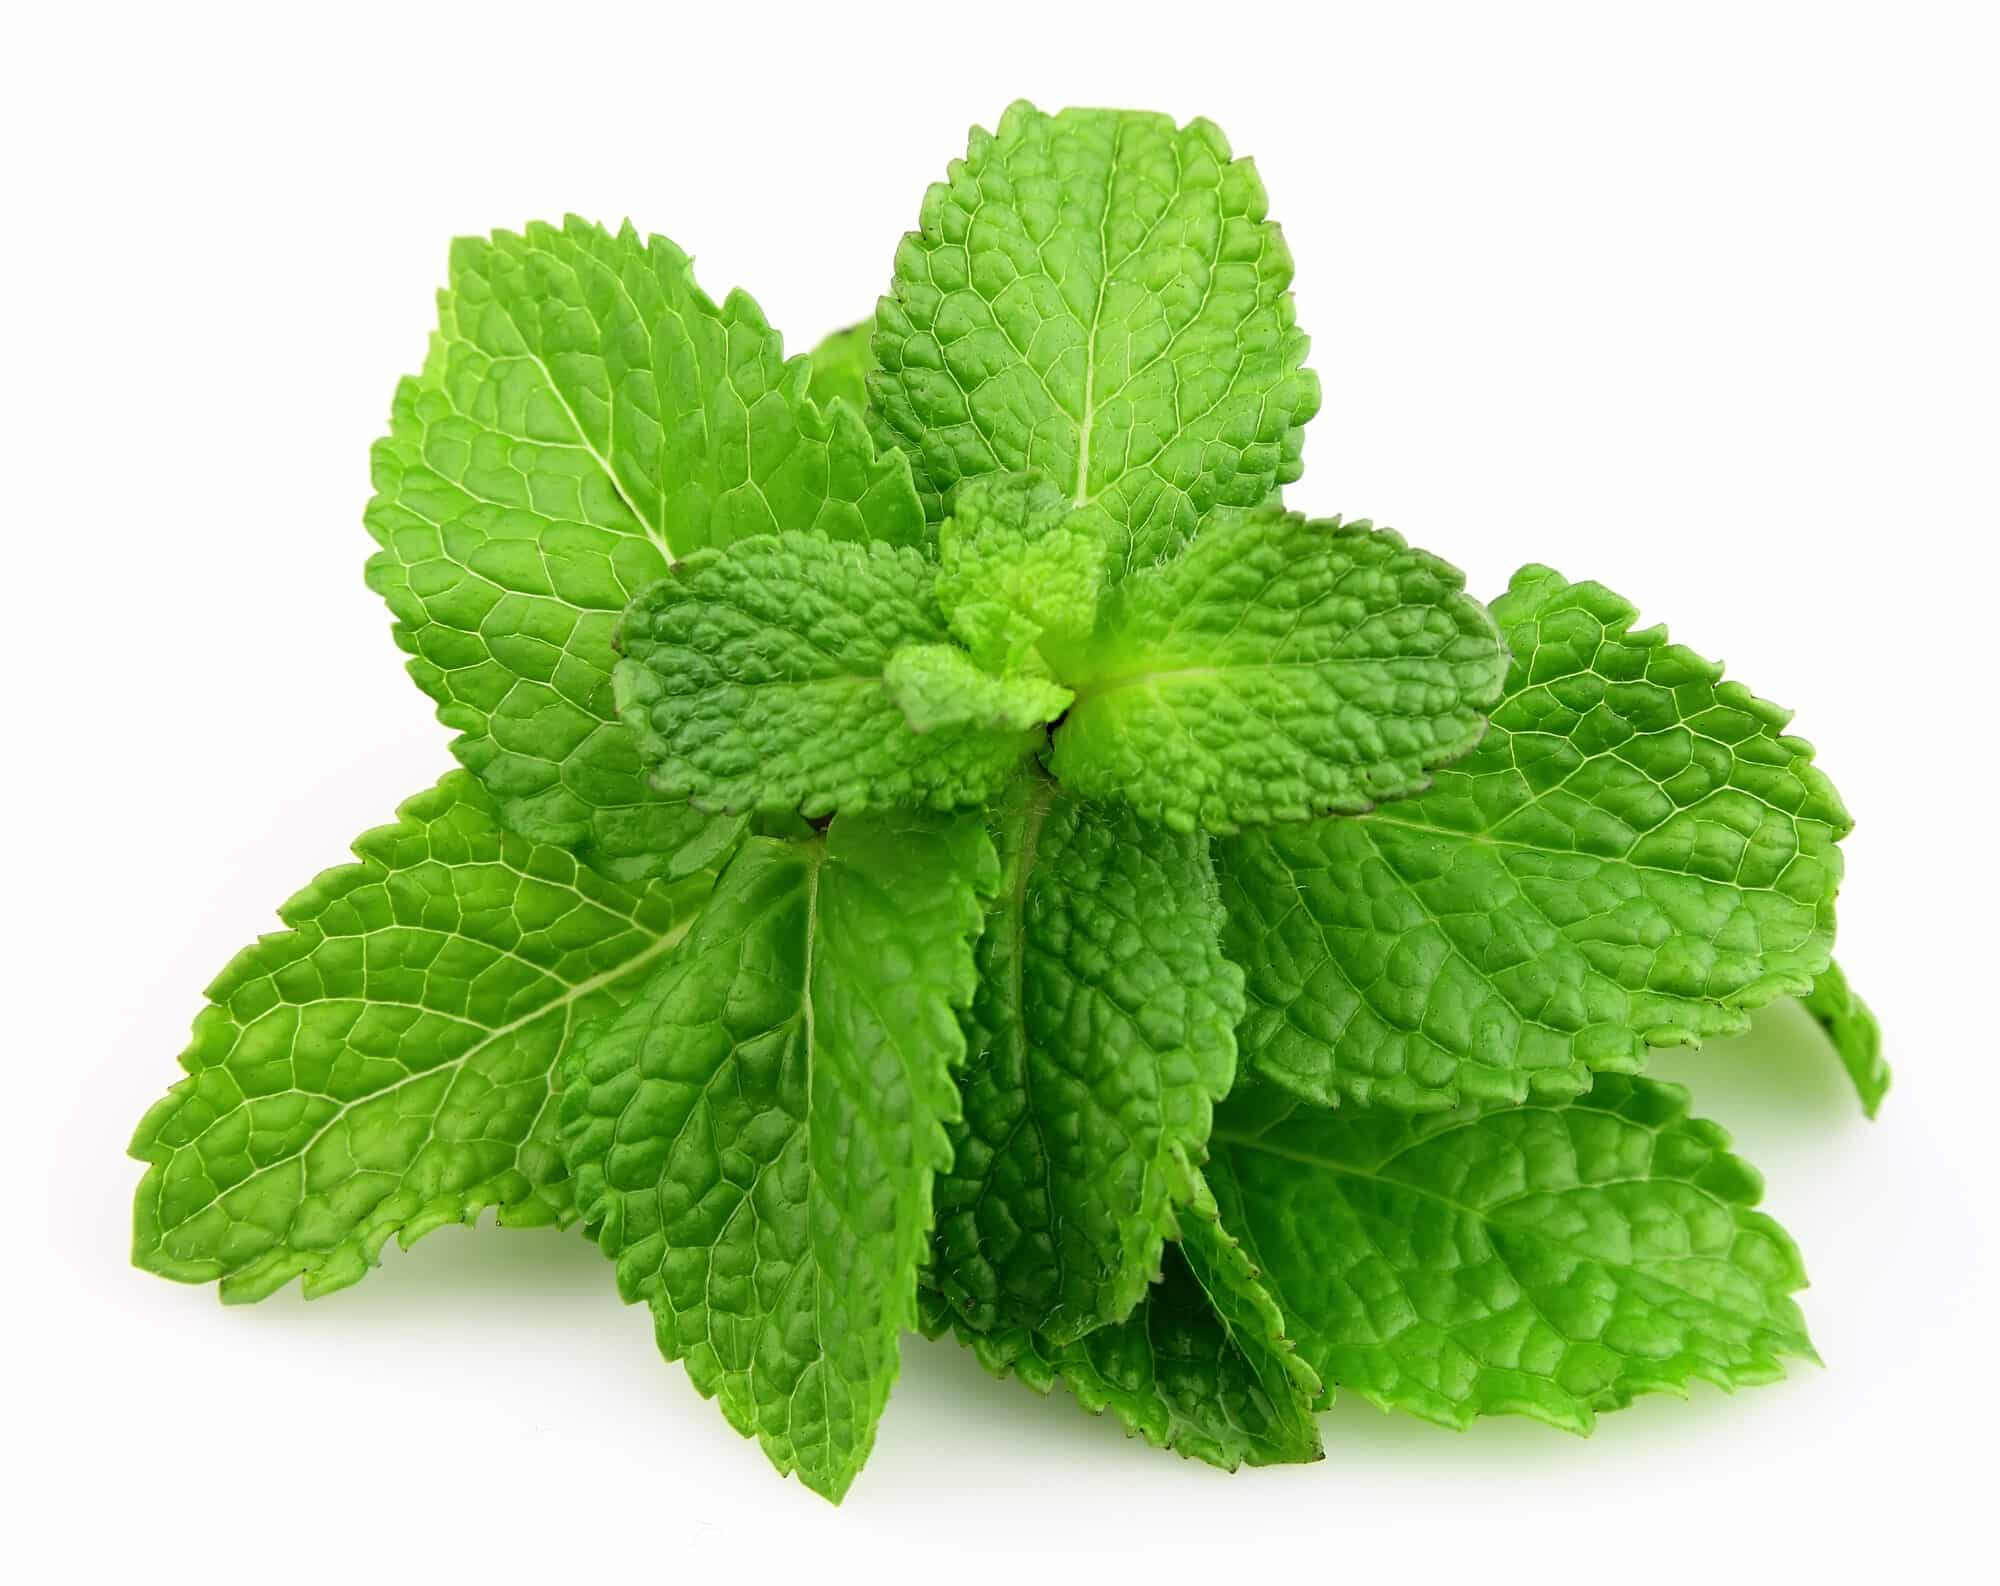 Cooking With Orange Mint: The Dos And Don'ts